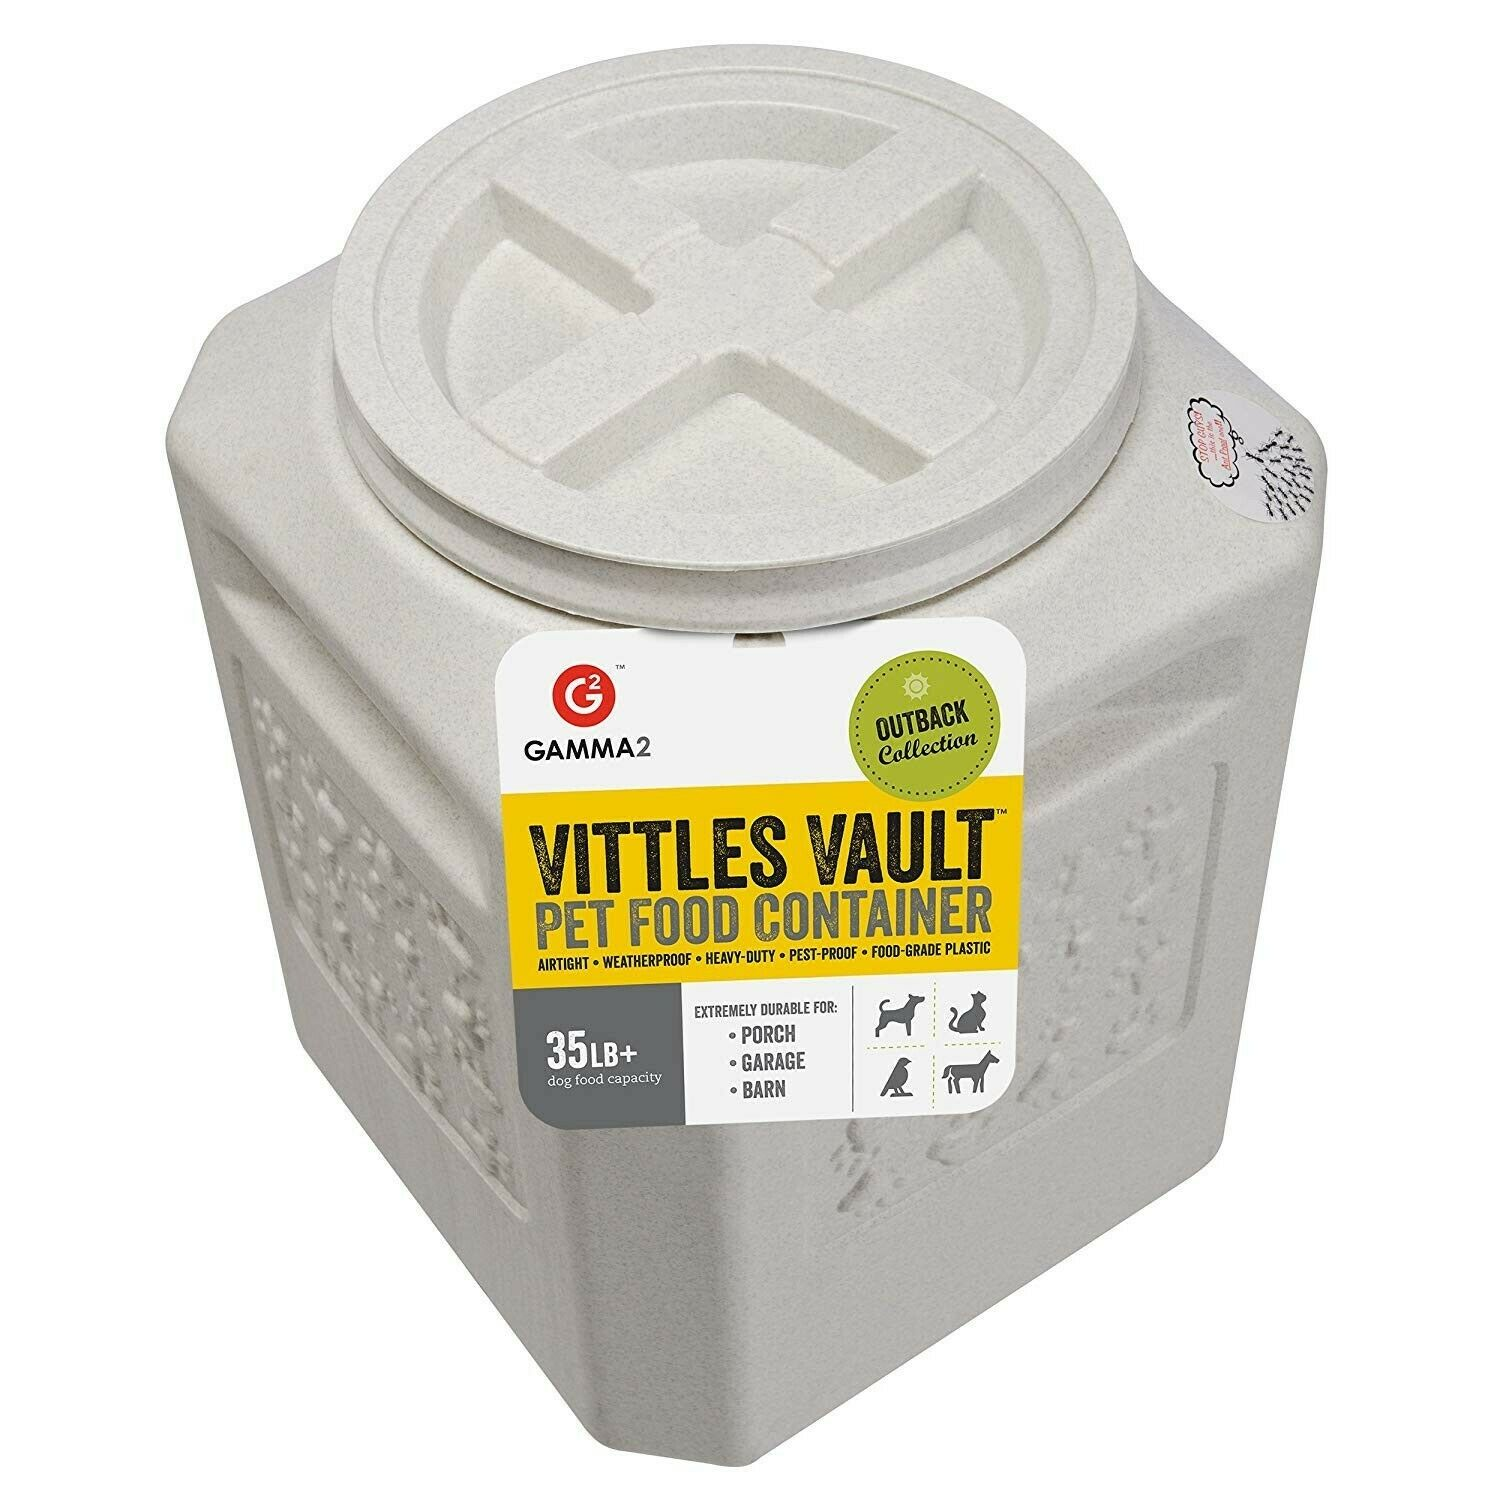 Vittles Vault Outback 35 lb Airtight Pet Food Storage Container